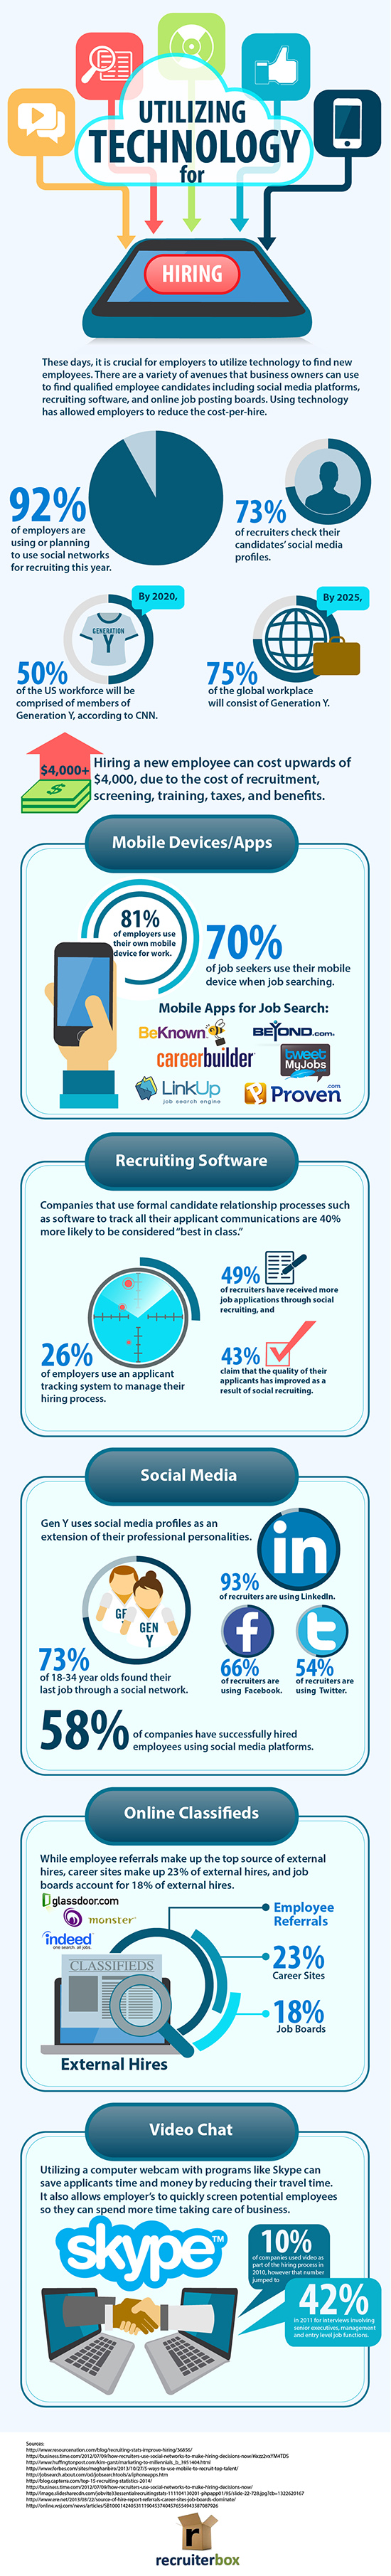 The 5 Ways Hr Pros Use Technology In The Hiring Process